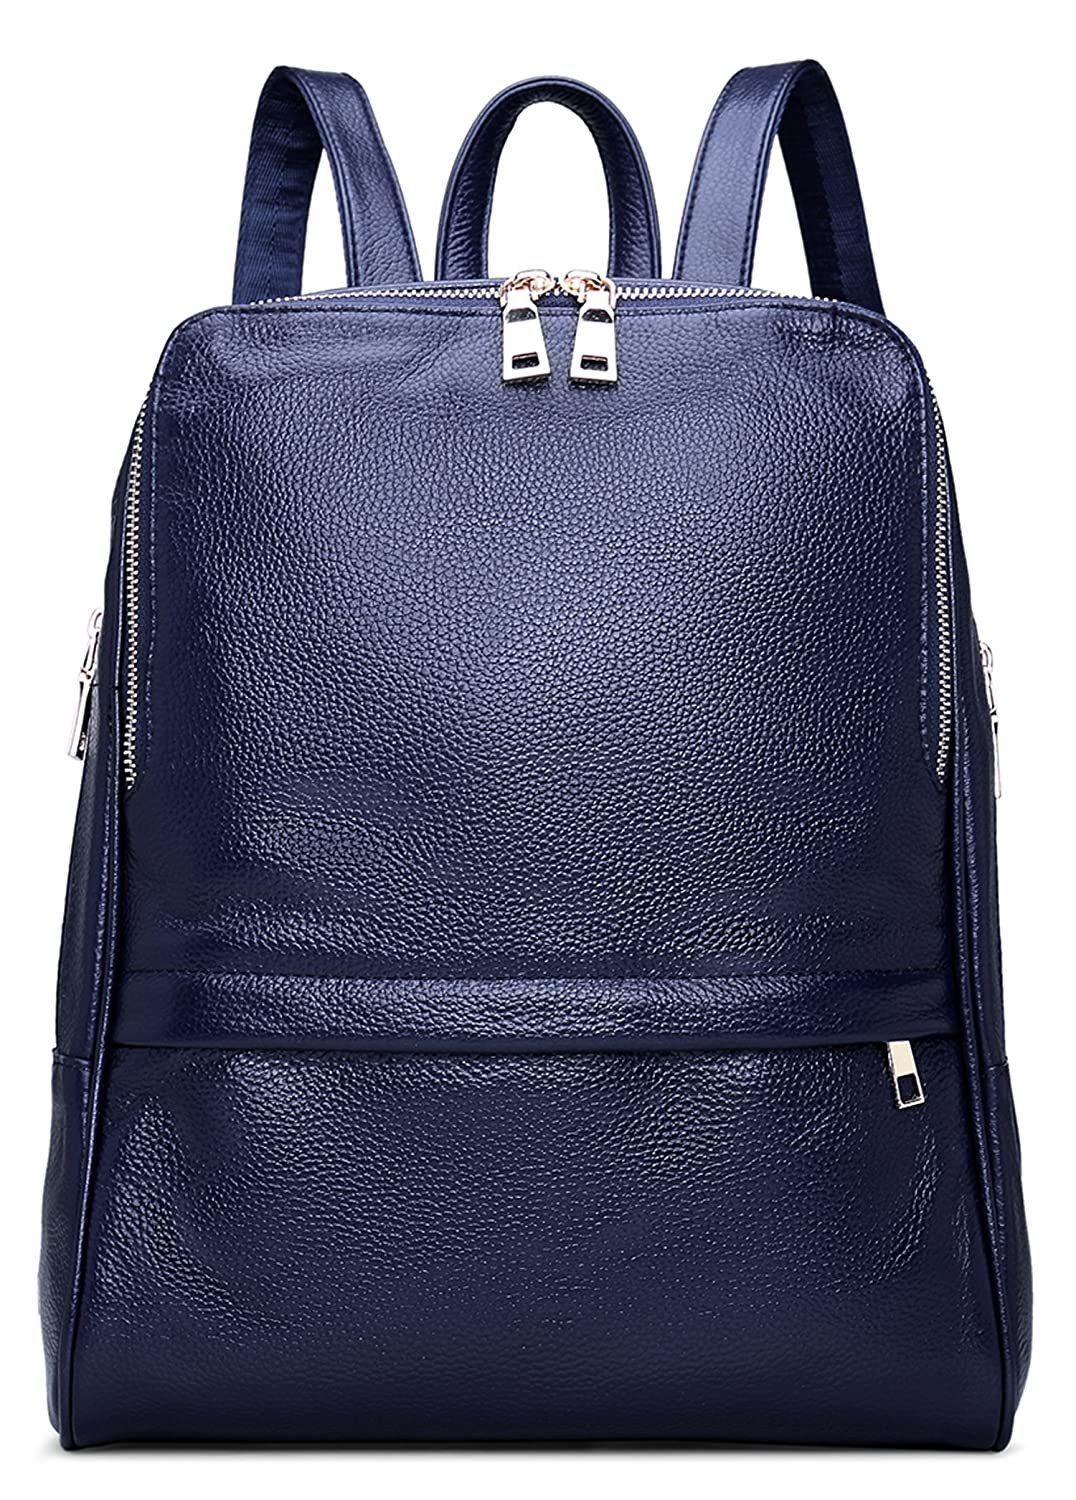 fa44f019045 Amazon.com   Coolcy Hot Style Women Real Genuine Leather Backpack Fashion  Bag (Royal Blue)   Casual Daypacks